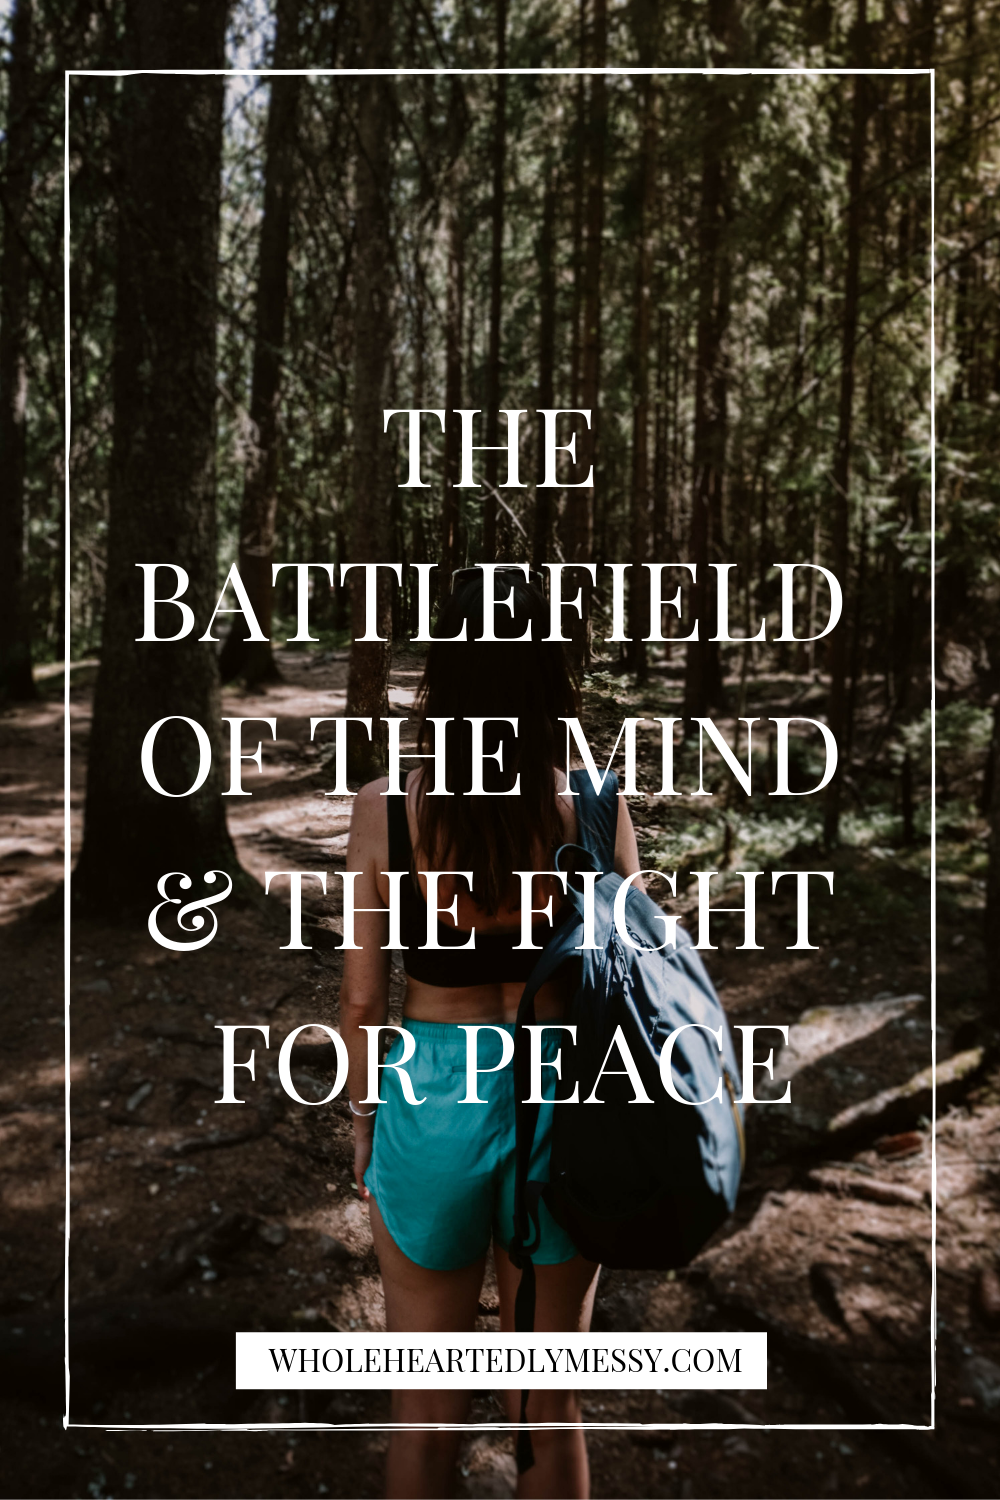 THE BATTLEFIELD OF THE MIND + THE FIGHT FOR PEACE